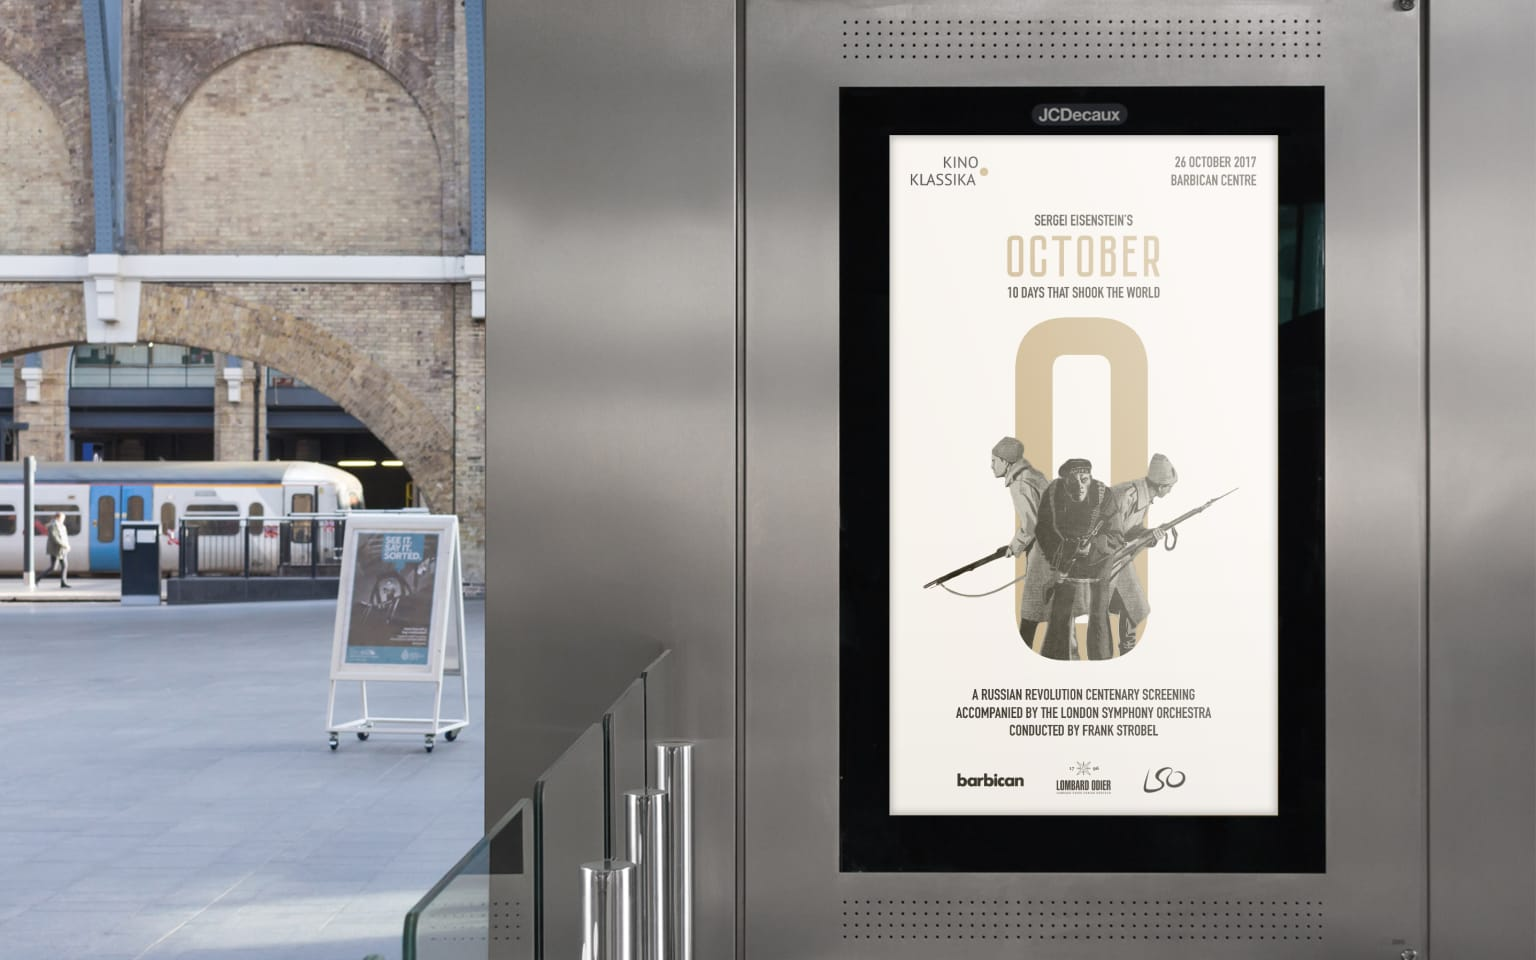 Identity for Gala Screening of «October: Ten Days That Shook The World»